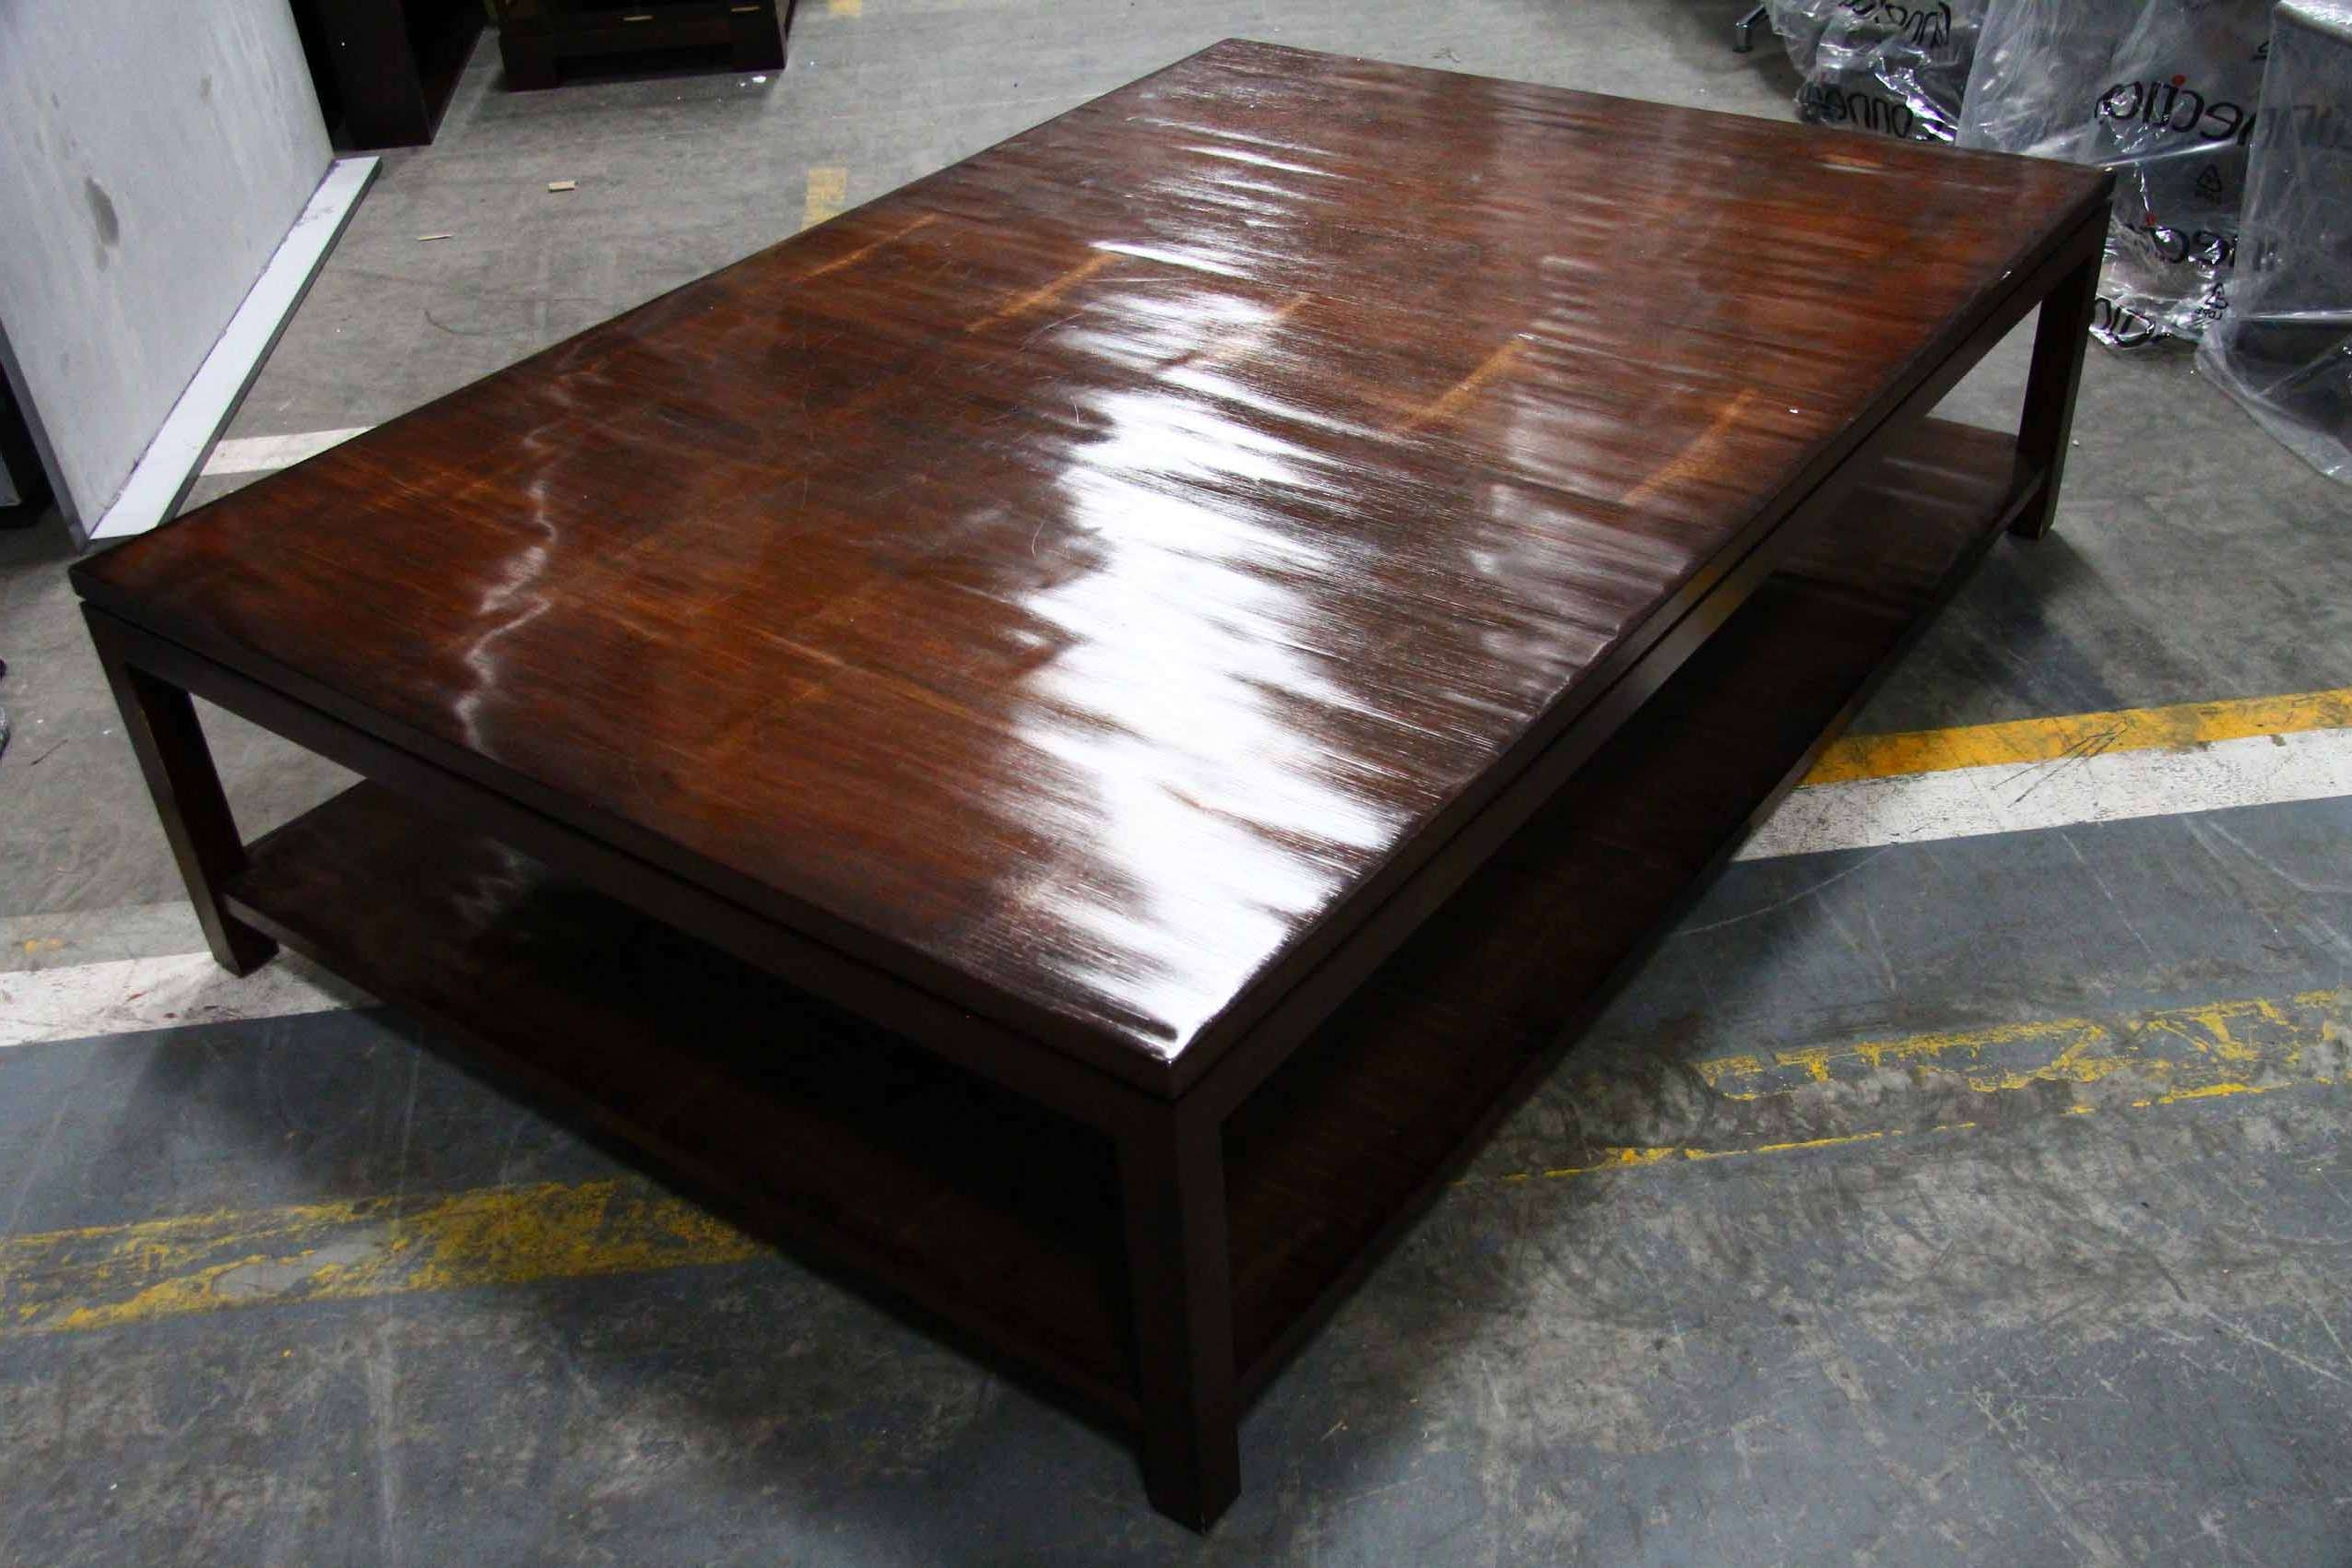 Simple Dark Wood Low Coffee Table Large Coffee Table With Storage Throughout Famous Low Coffee Table With Storage (View 3 of 20)